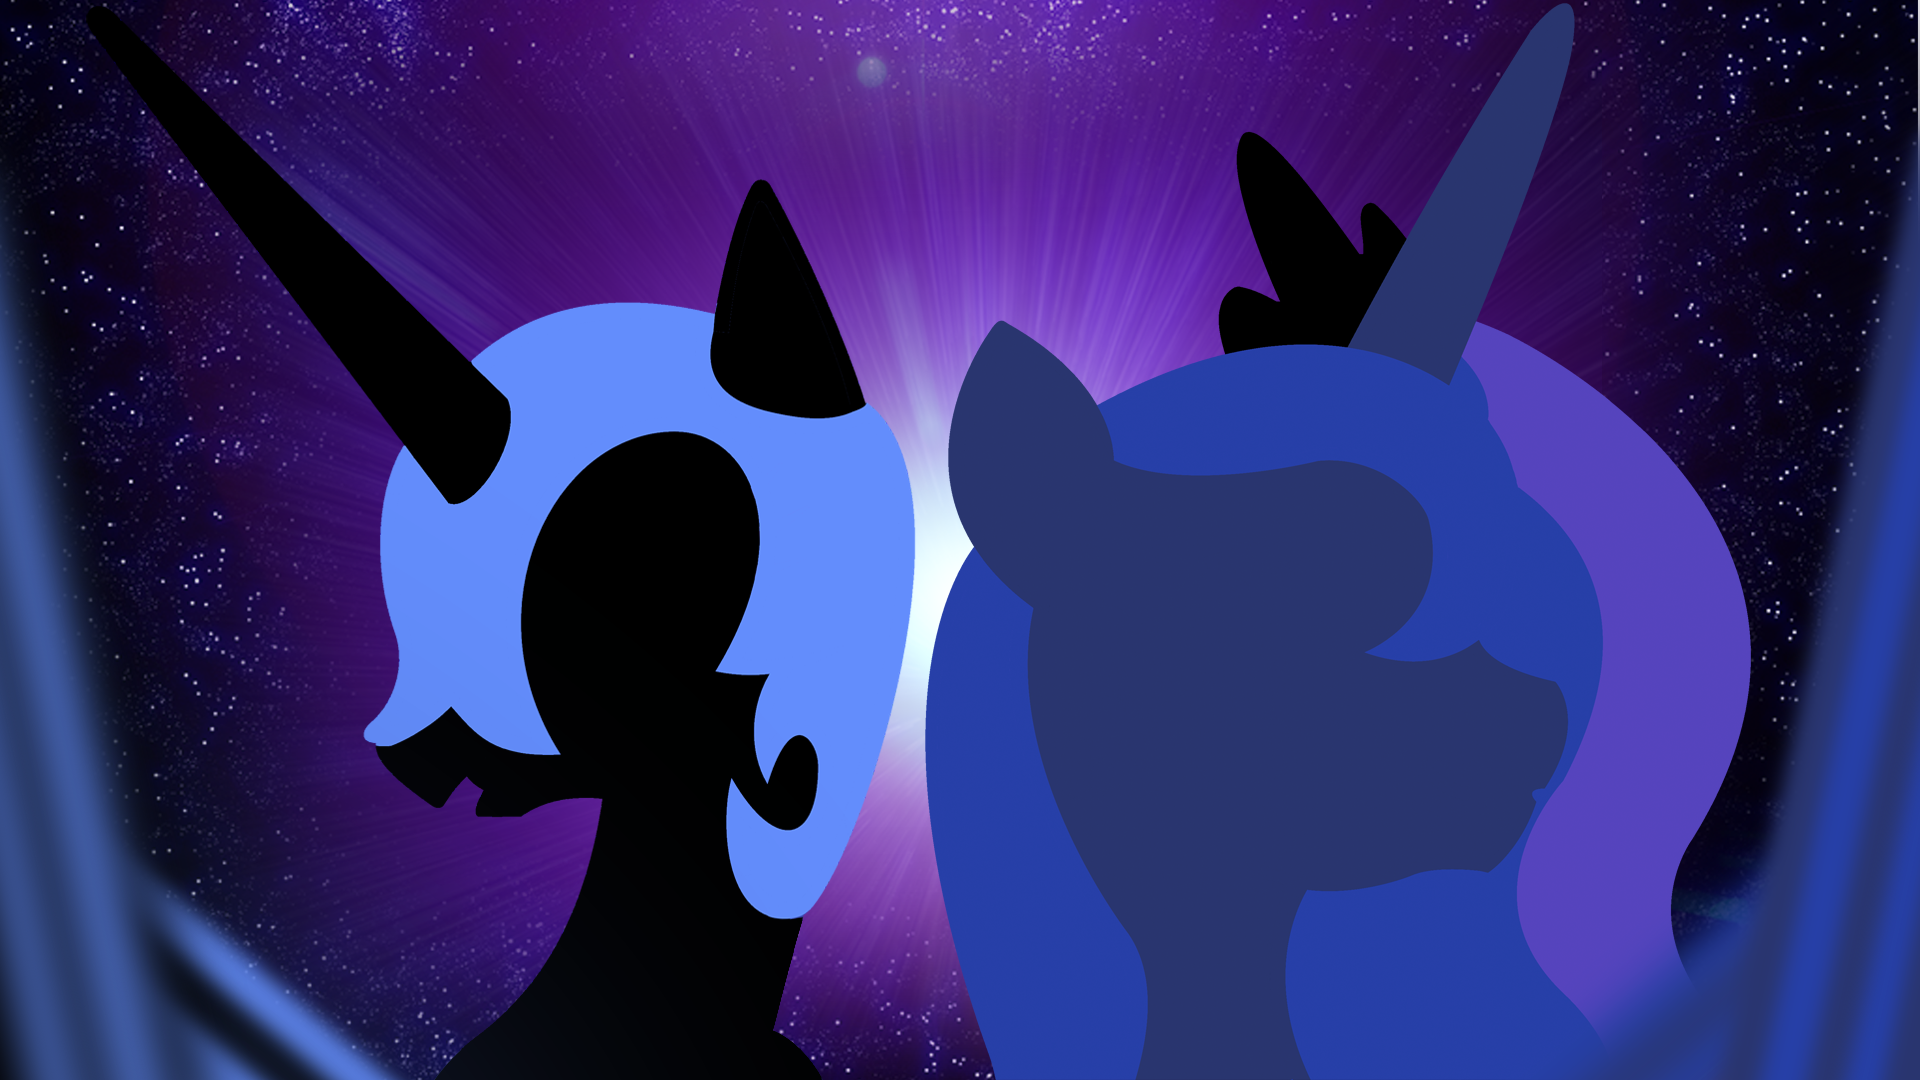 Nightmare Moon and Princess Luna Wallpaper by BlueDragonHans, hombre0 and Vexorb